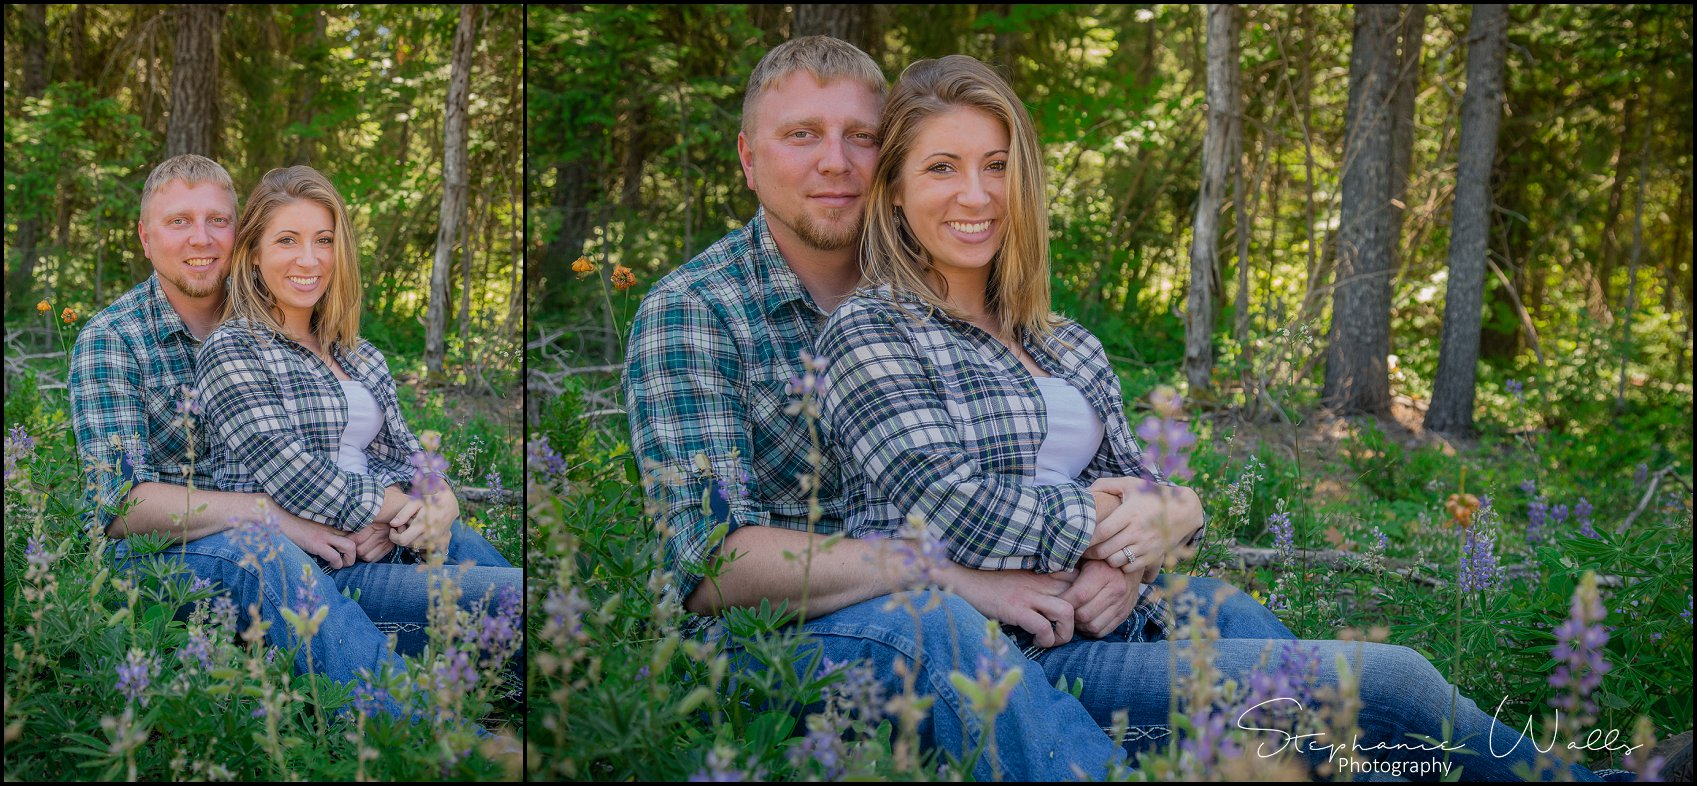 Taylor Jessie074 TAYLOR & JESSE | EASTON, WA ENGAGEMENT SESSION { SNOHOMISH WEDDING PHOTOGRAPHER }